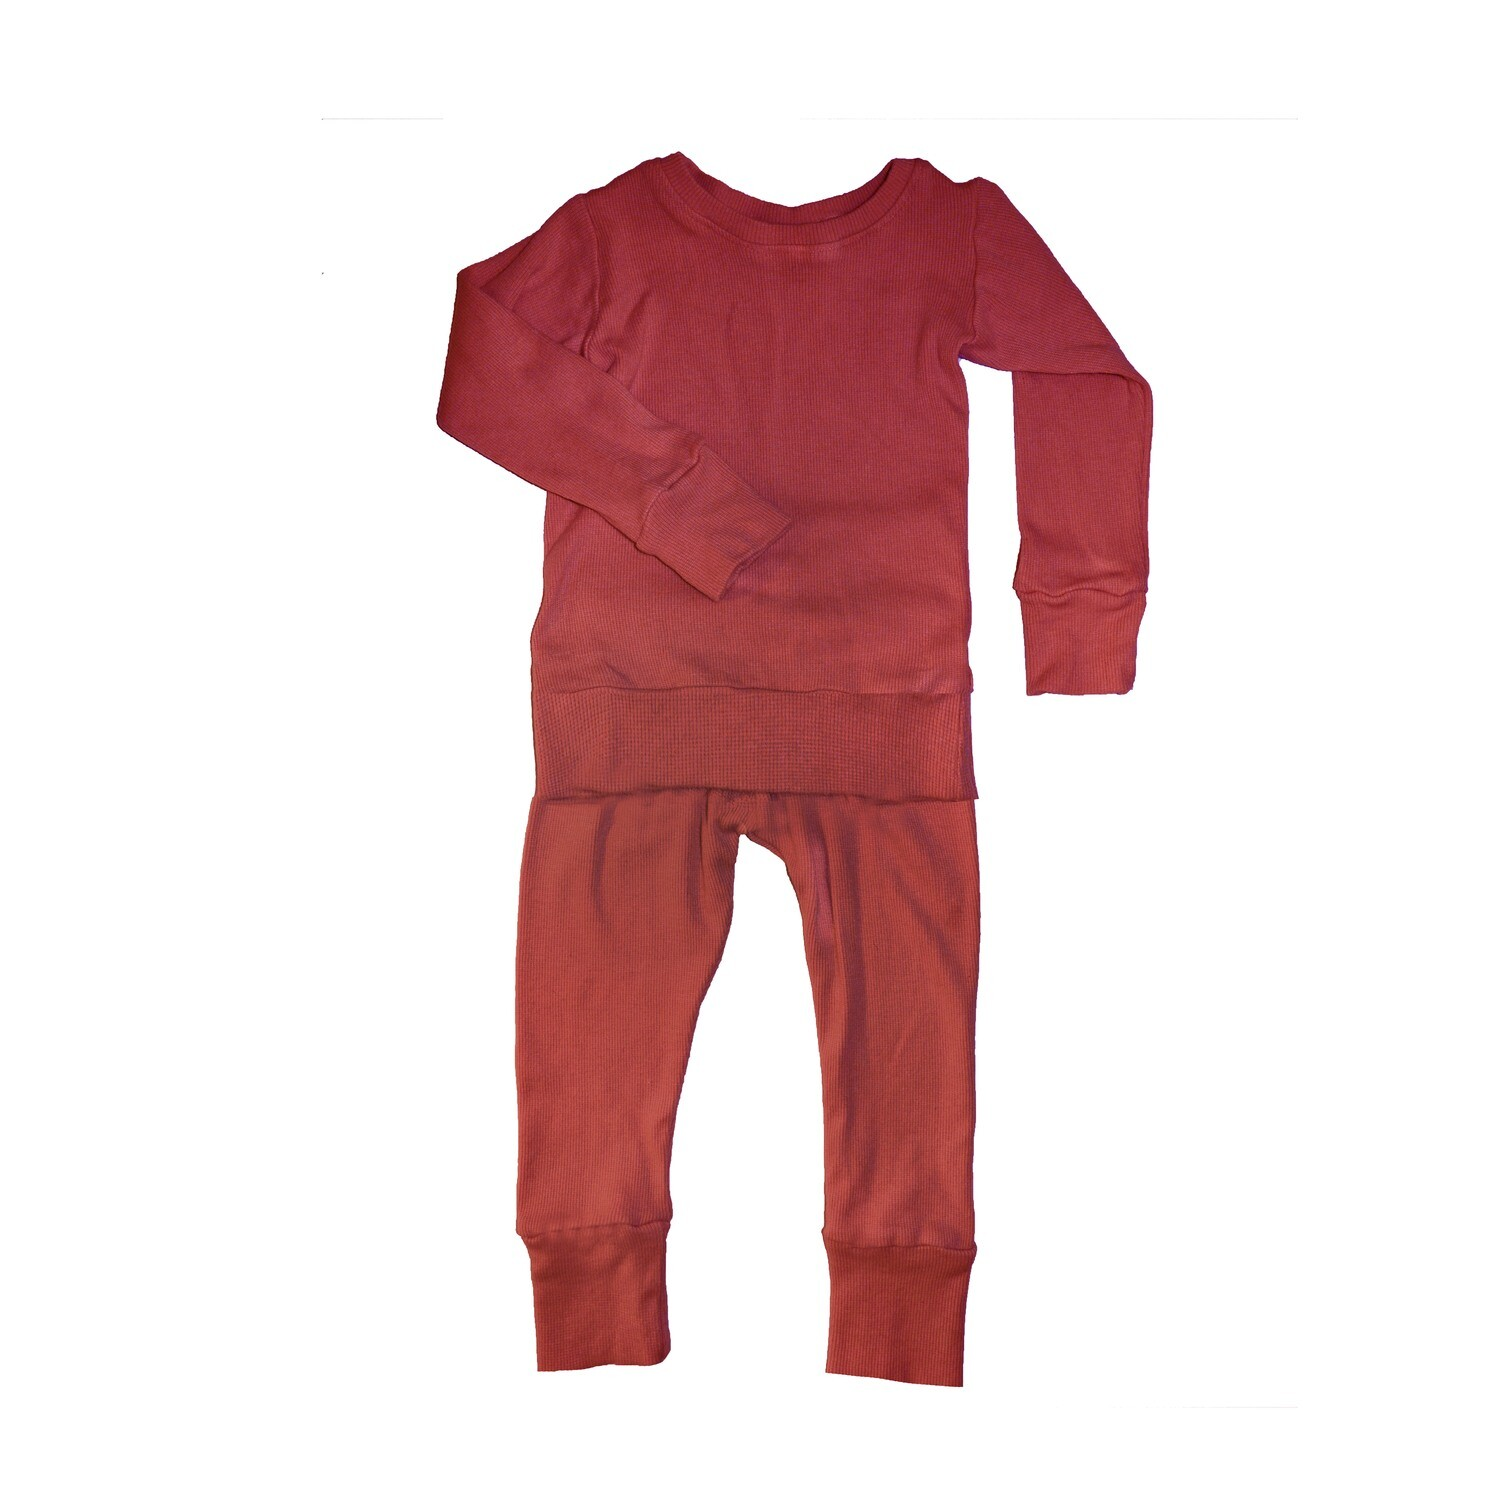 Little Sprout™ 2-Piece Grow with Me Footless Ribbed Knit Pyjamas | Cayenne